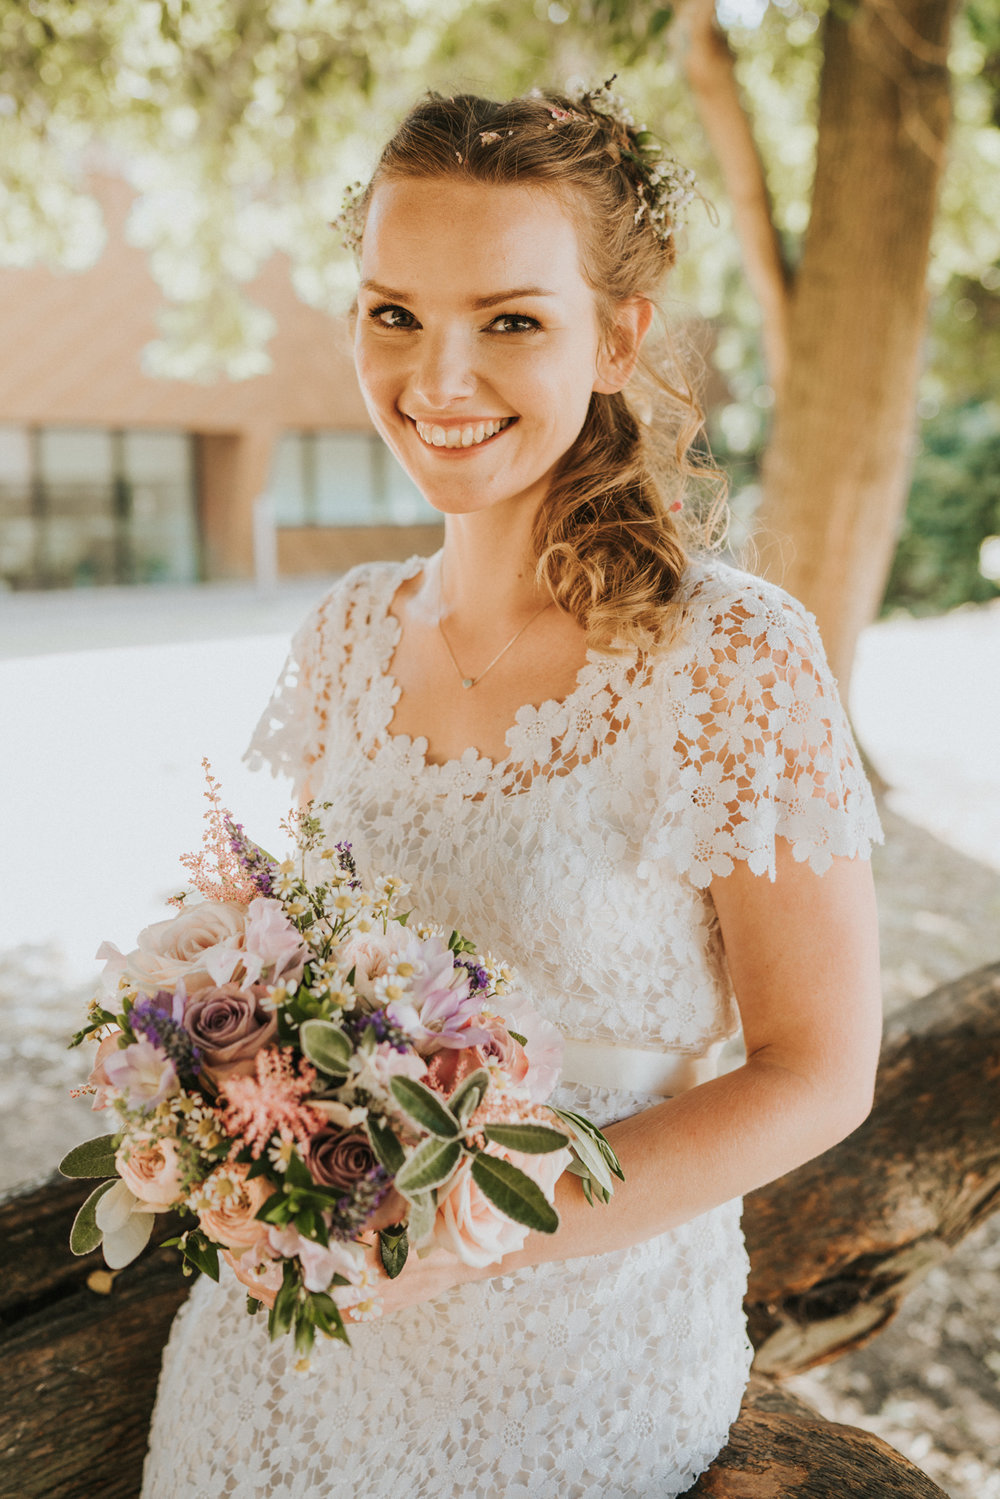 Grace-Elizabeth-Georgie-Amalaketu-Firstsite-Colchester-Essex-Boho-Buddhist-Wedding-Alternative-Wedding-Photography-Essex (87 of 100).jpg